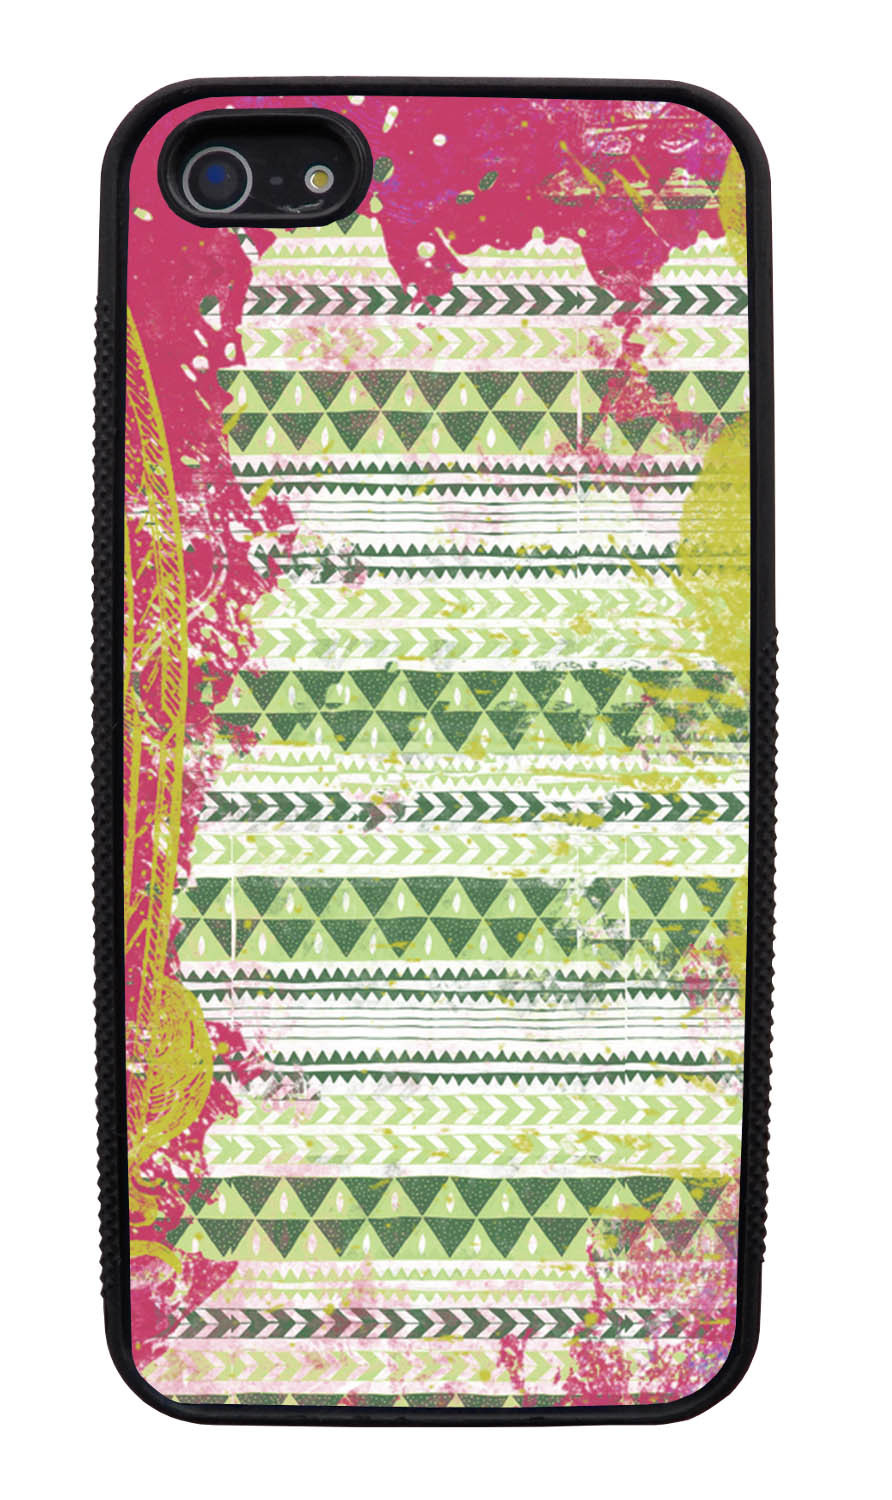 Apple iPhone 5 / 5S Aztec Case - Pink and Yellow Paint with Green - Paint Splatter Overlay - Black Slim Rubber Case